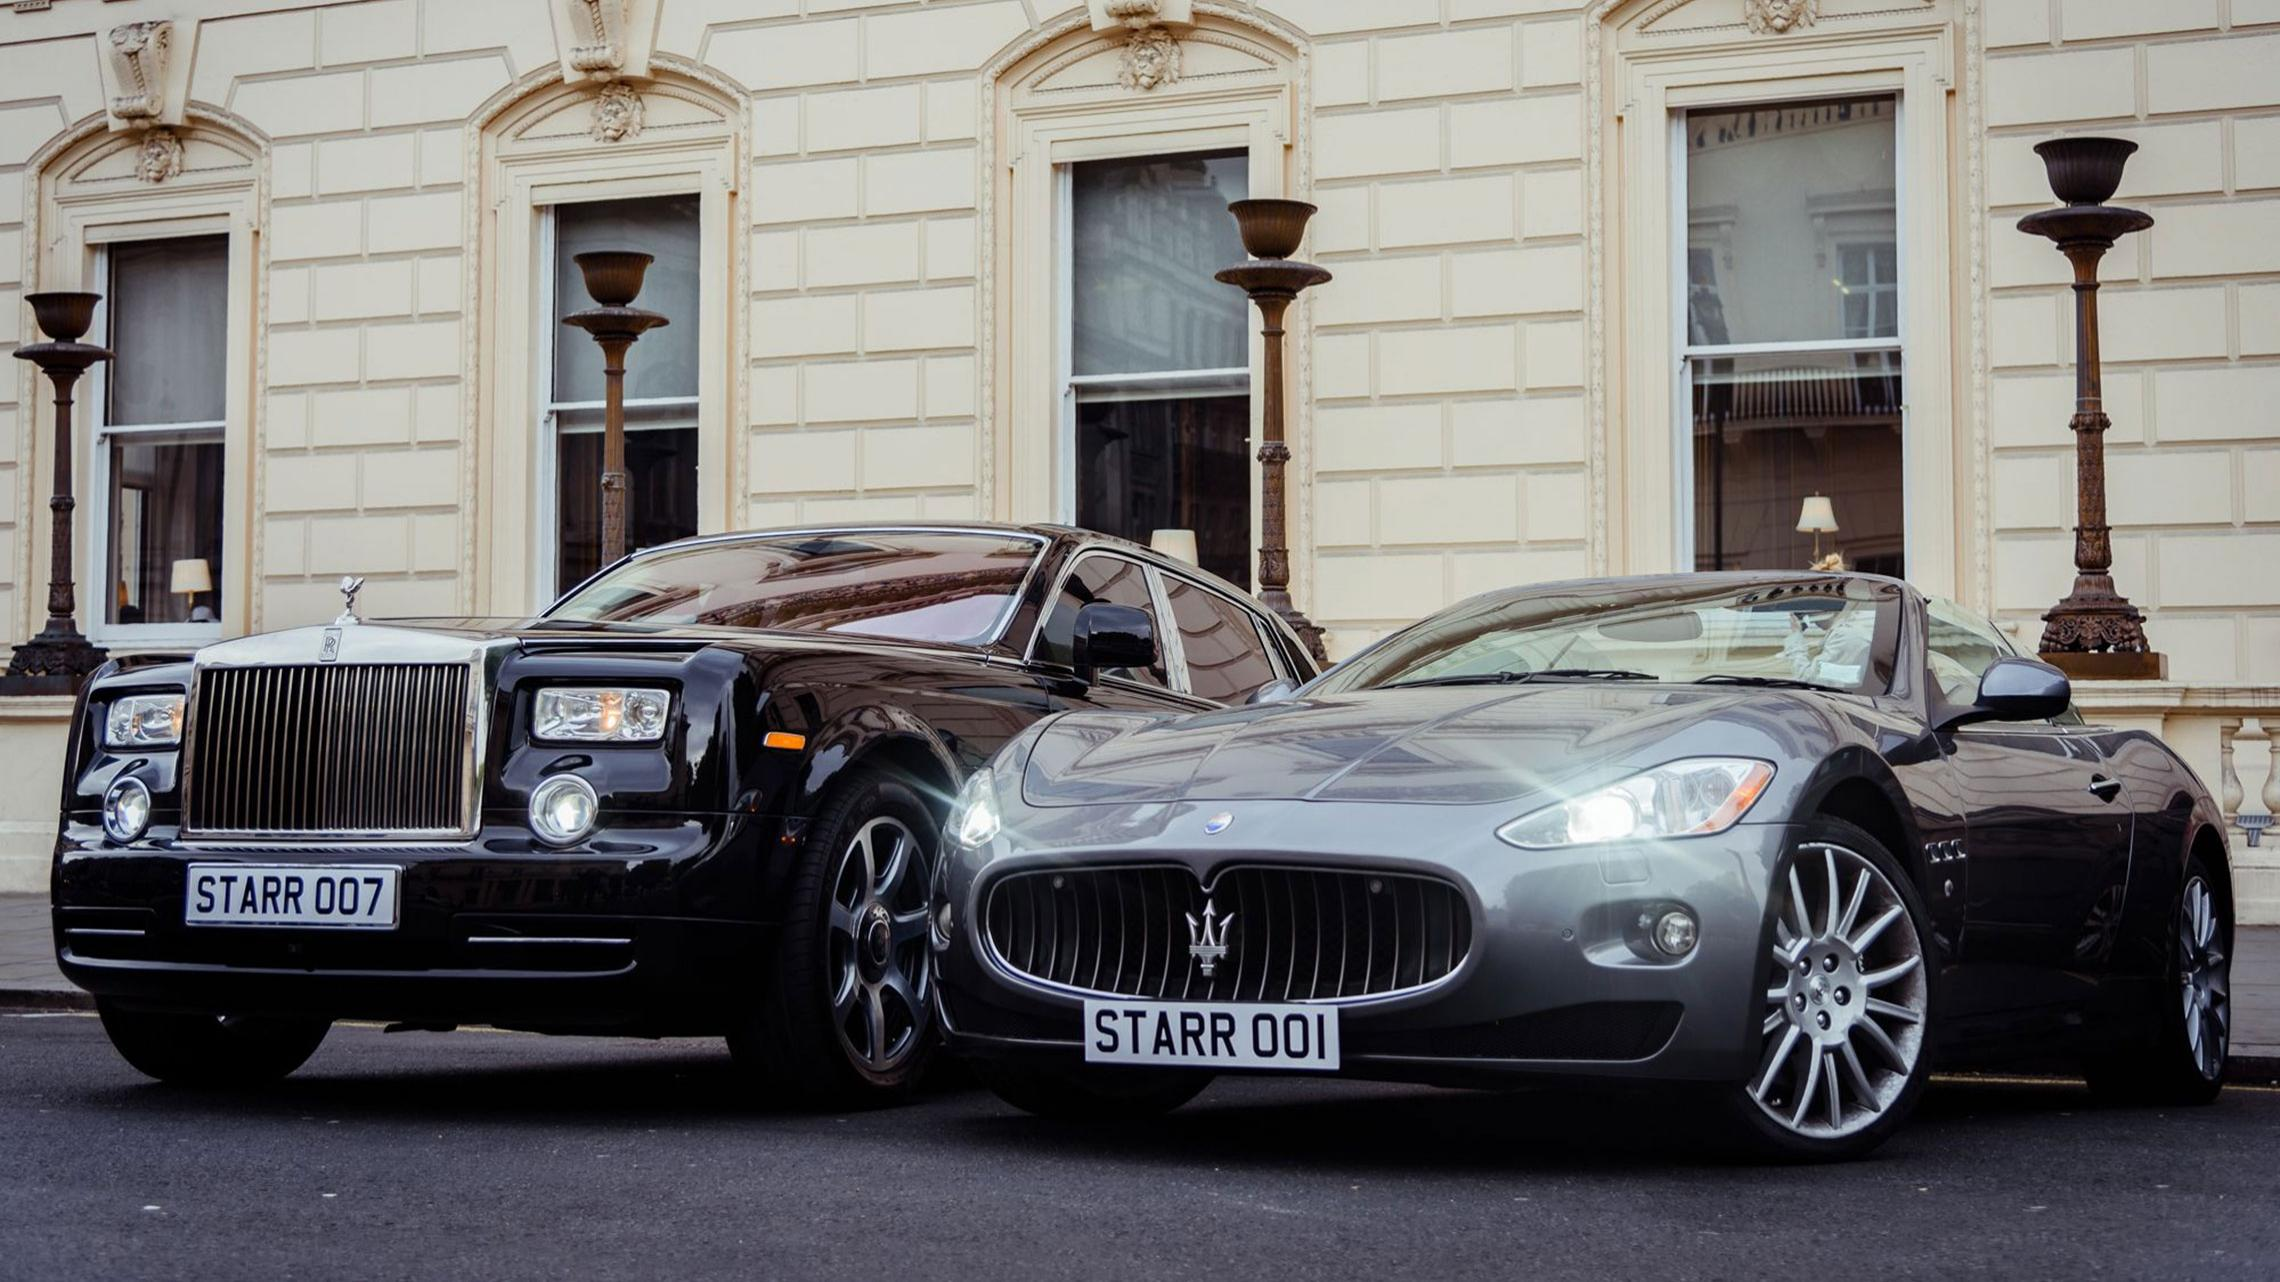 Starr Luxury Car Hire From A To B In Ultimate Style Motoring Drive Luxury London